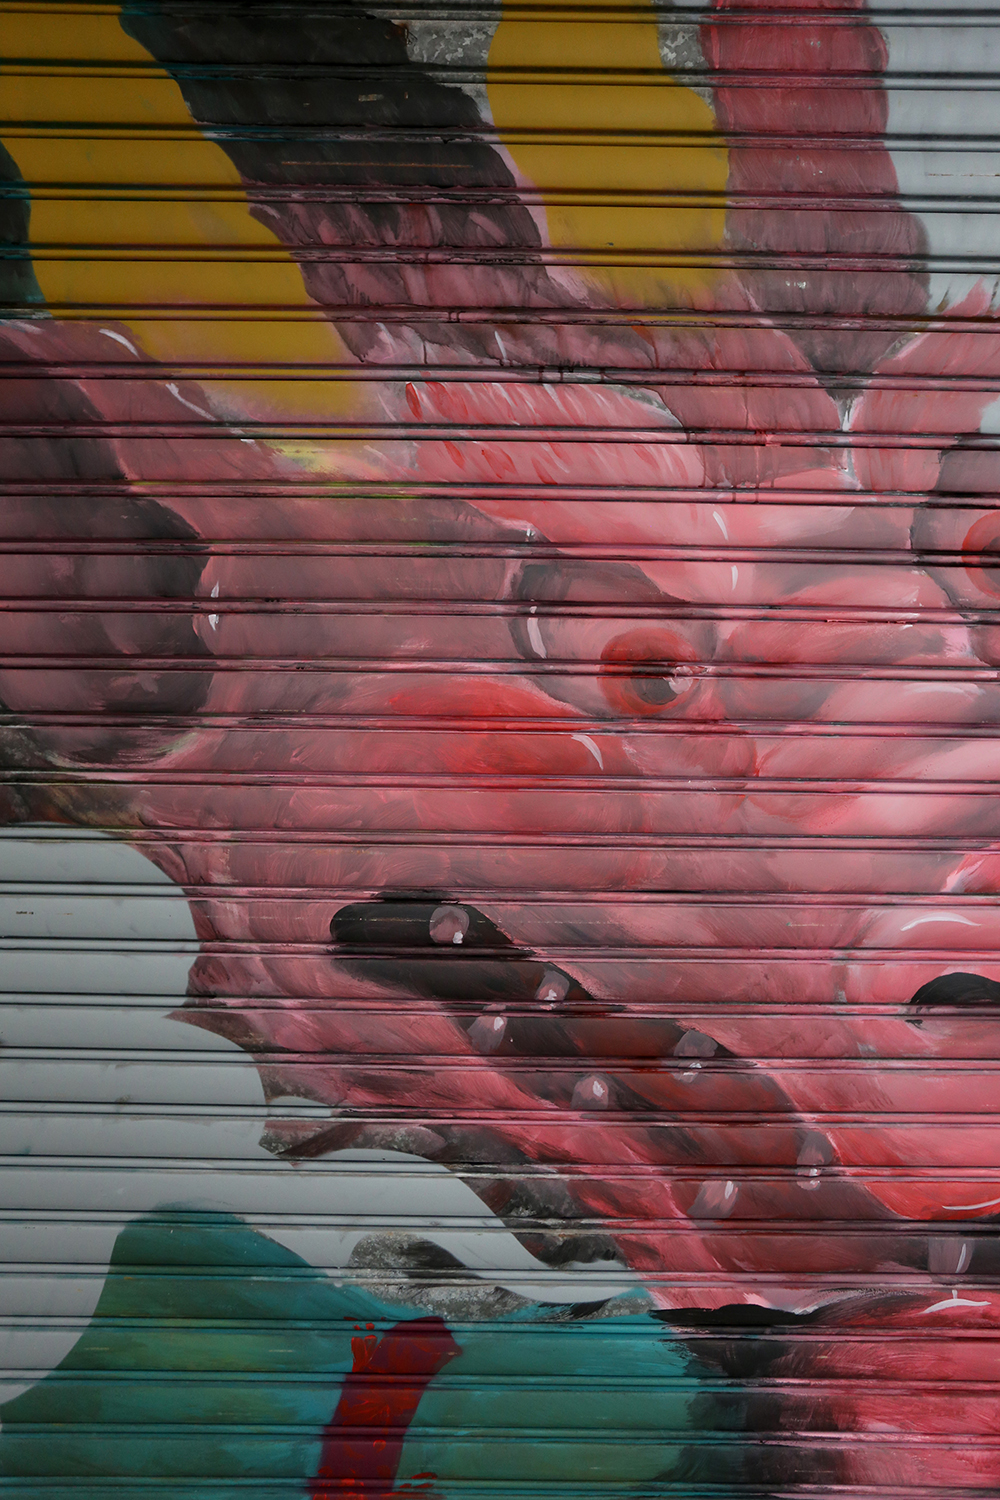 barlo-new-shutter-at-stanley-market-hong-kong-03